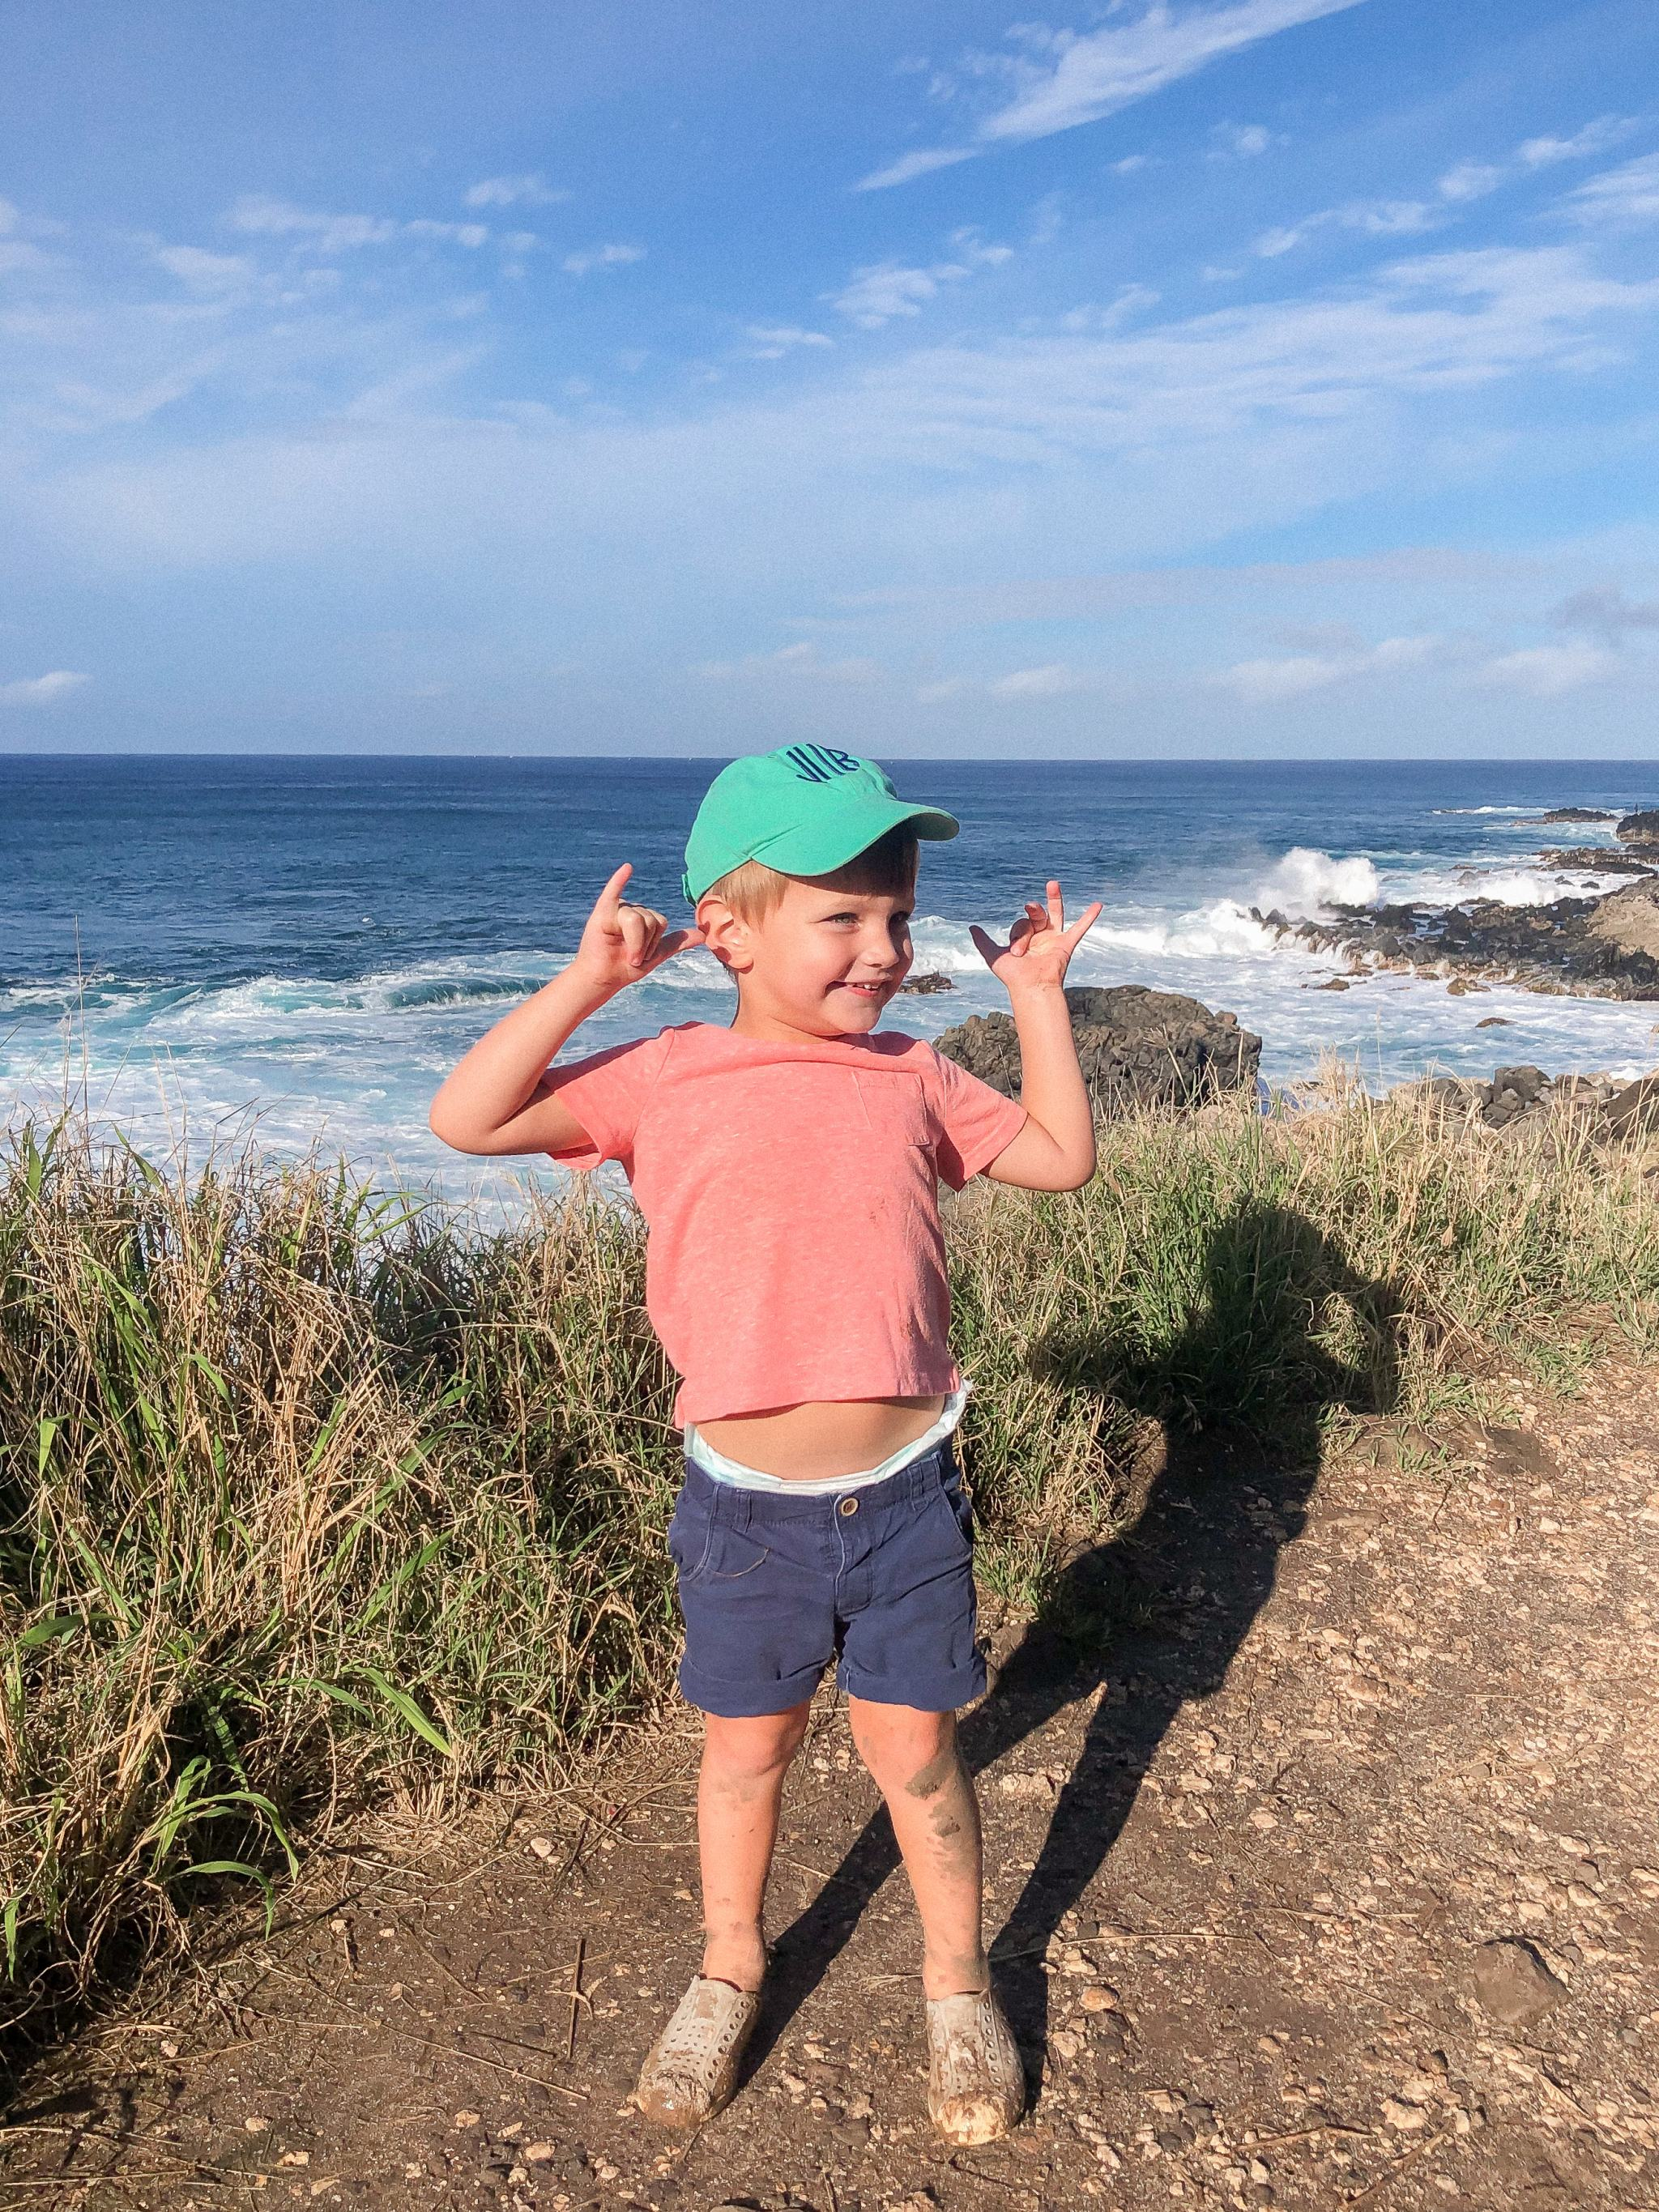 Hiking in Hawaii - Best Hikes in Hawaii - Hiking in Honolulu Hawaii - Best Trails in Hawaii - Hawaii Hiking Trails - Hawaii Hikes Oahu - Kaena Point Trail Oahu - Kid Friendly Hikes - Hiking with Kids Hawaii - Kaena Point - Ka'ena Point Hike